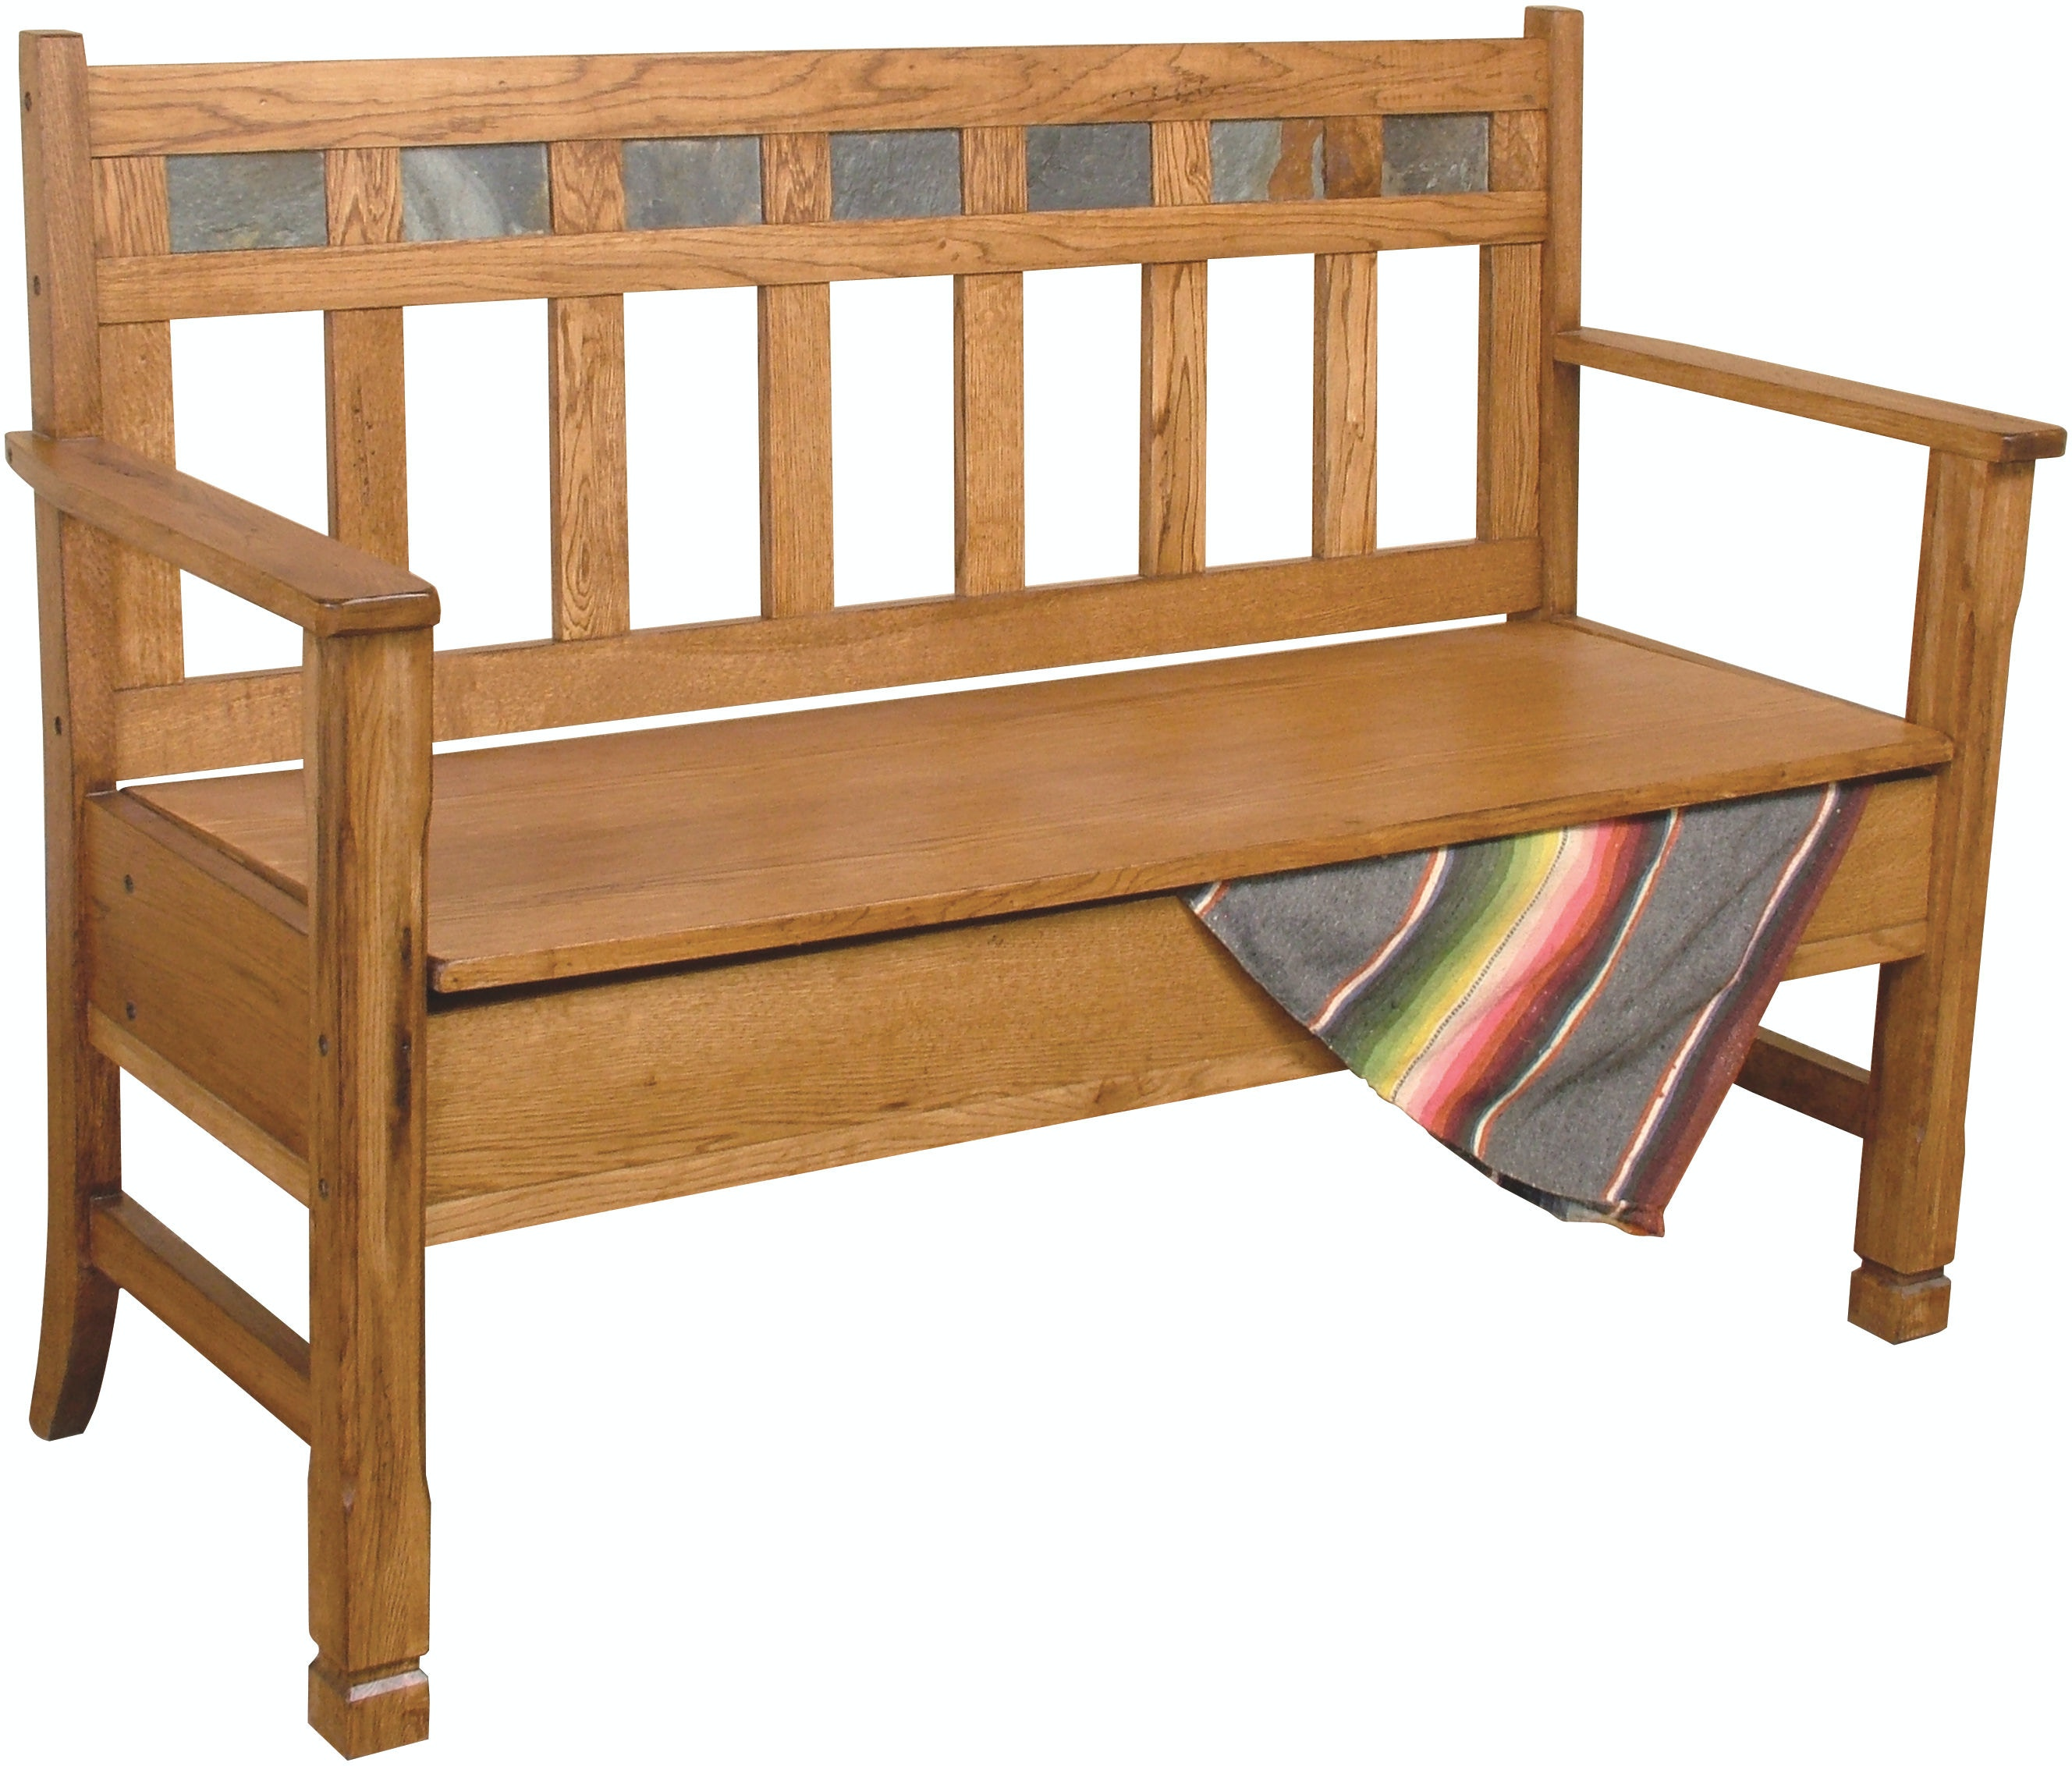 Sunny Designs Living Room Sedona Bench With Storage Wooden